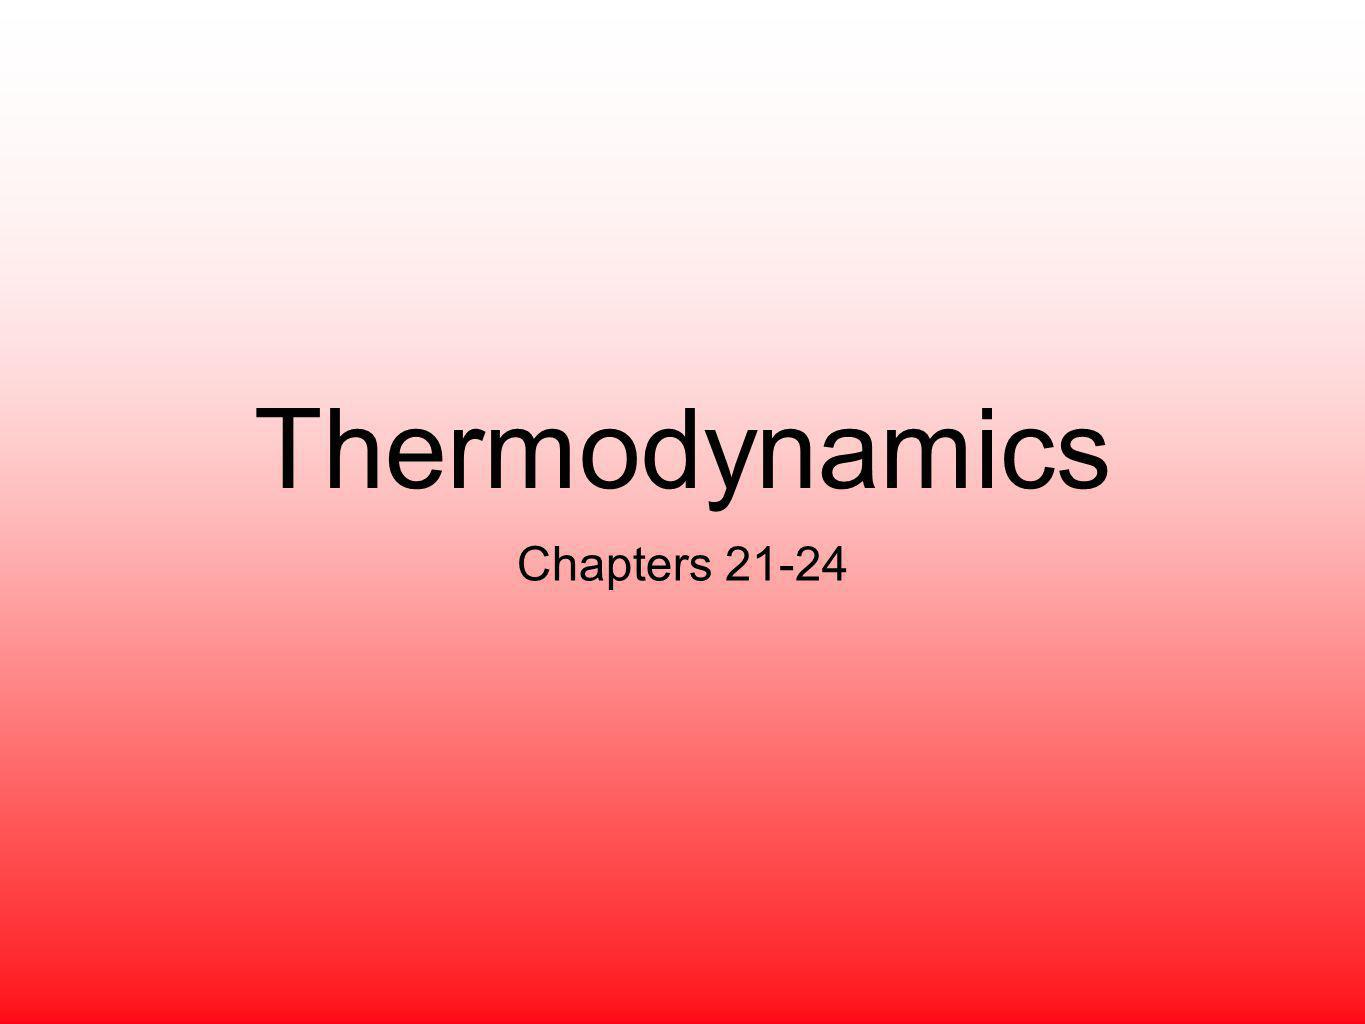 Thermodynamics Chapters 21-24